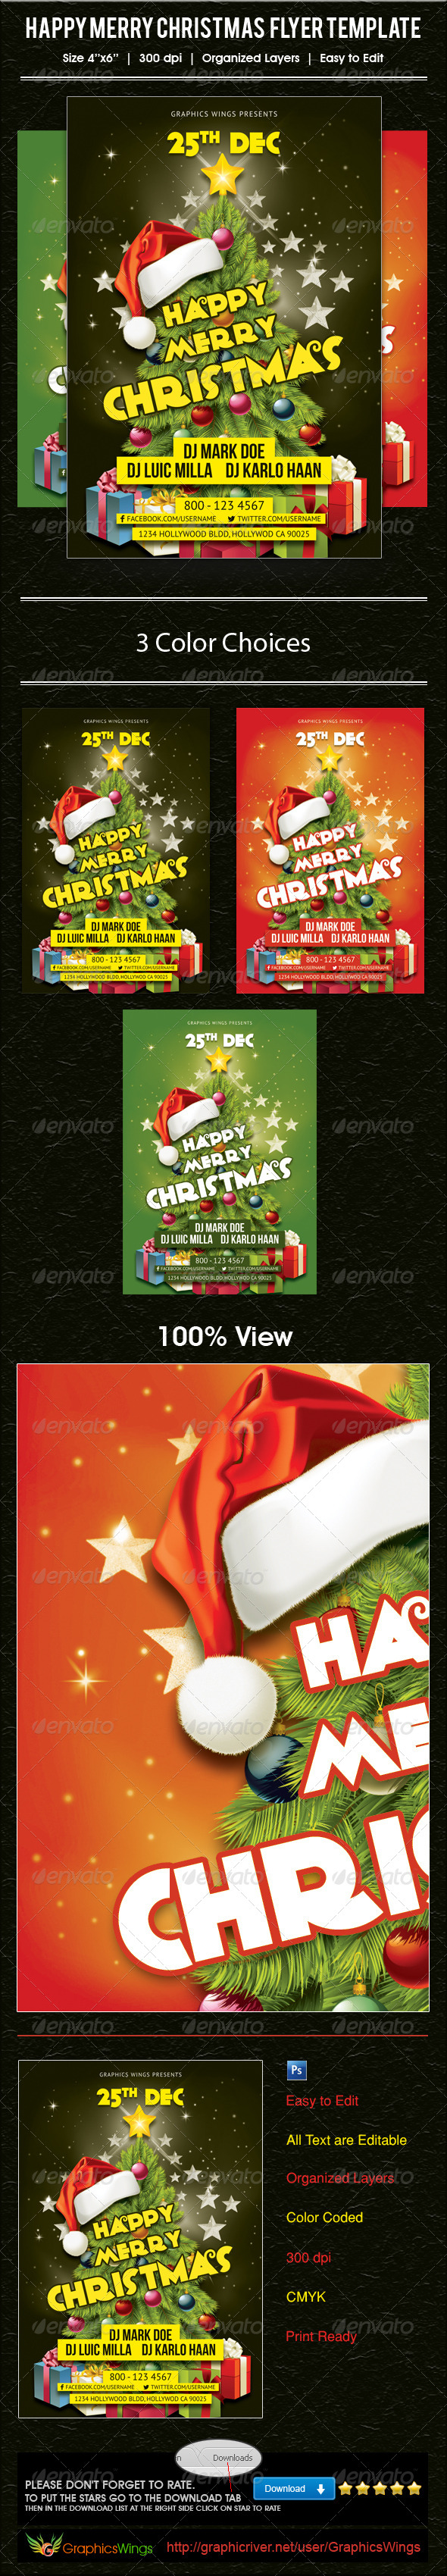 GraphicRiver Happy Merry Christmas Flyer Template 6387665